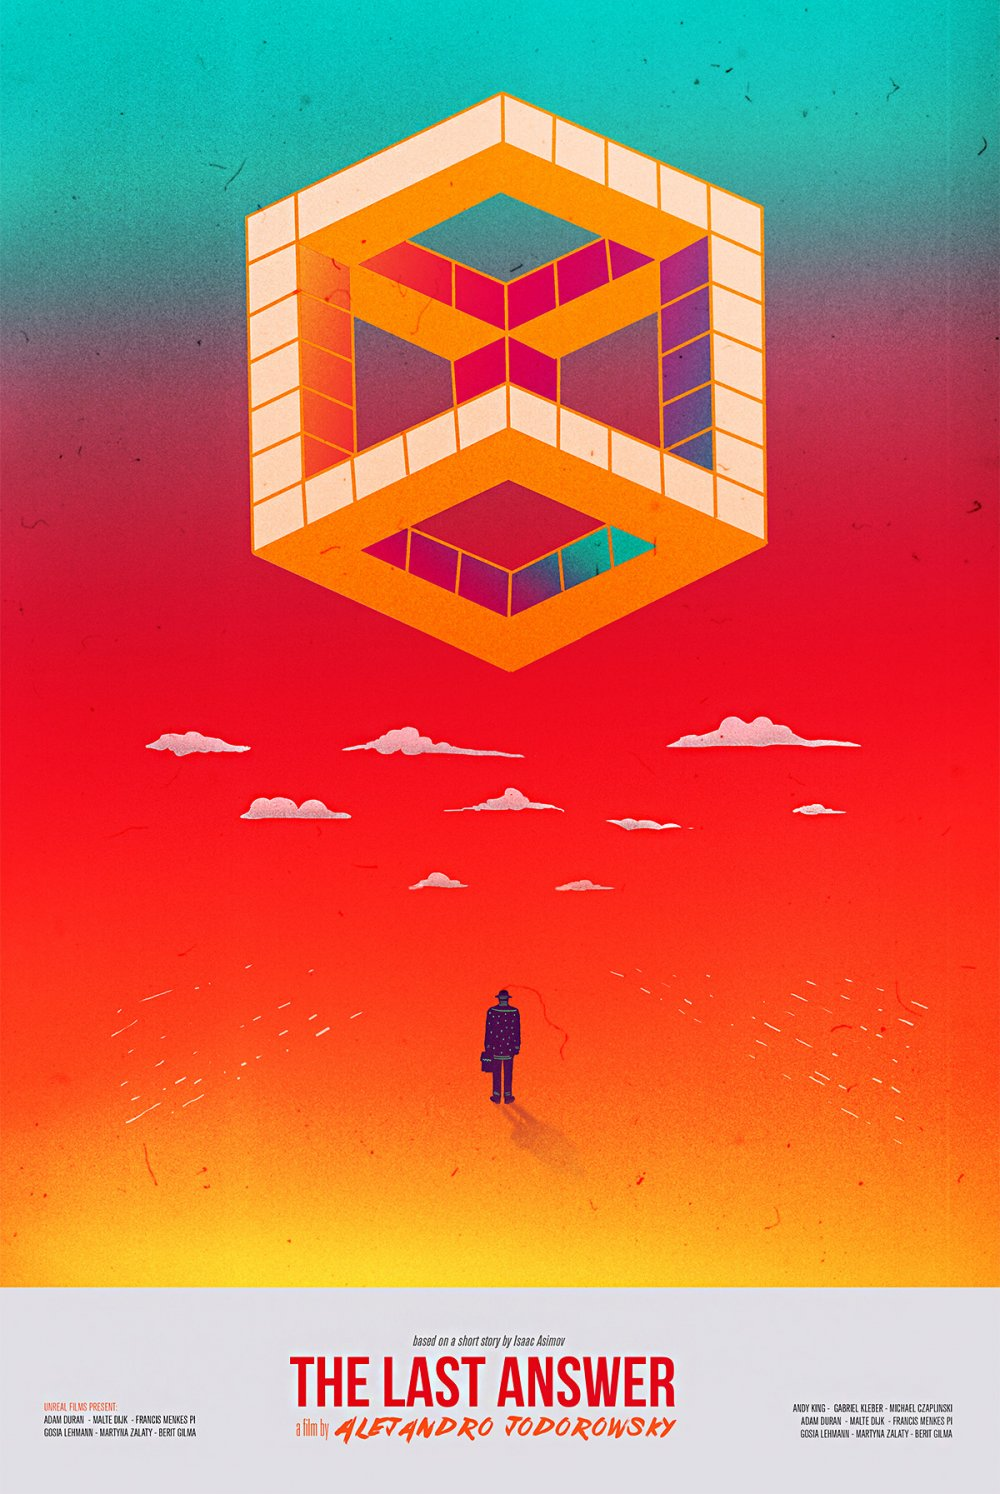 Poster for imaginary Jodorowsky film wins #BFIVoyager ...